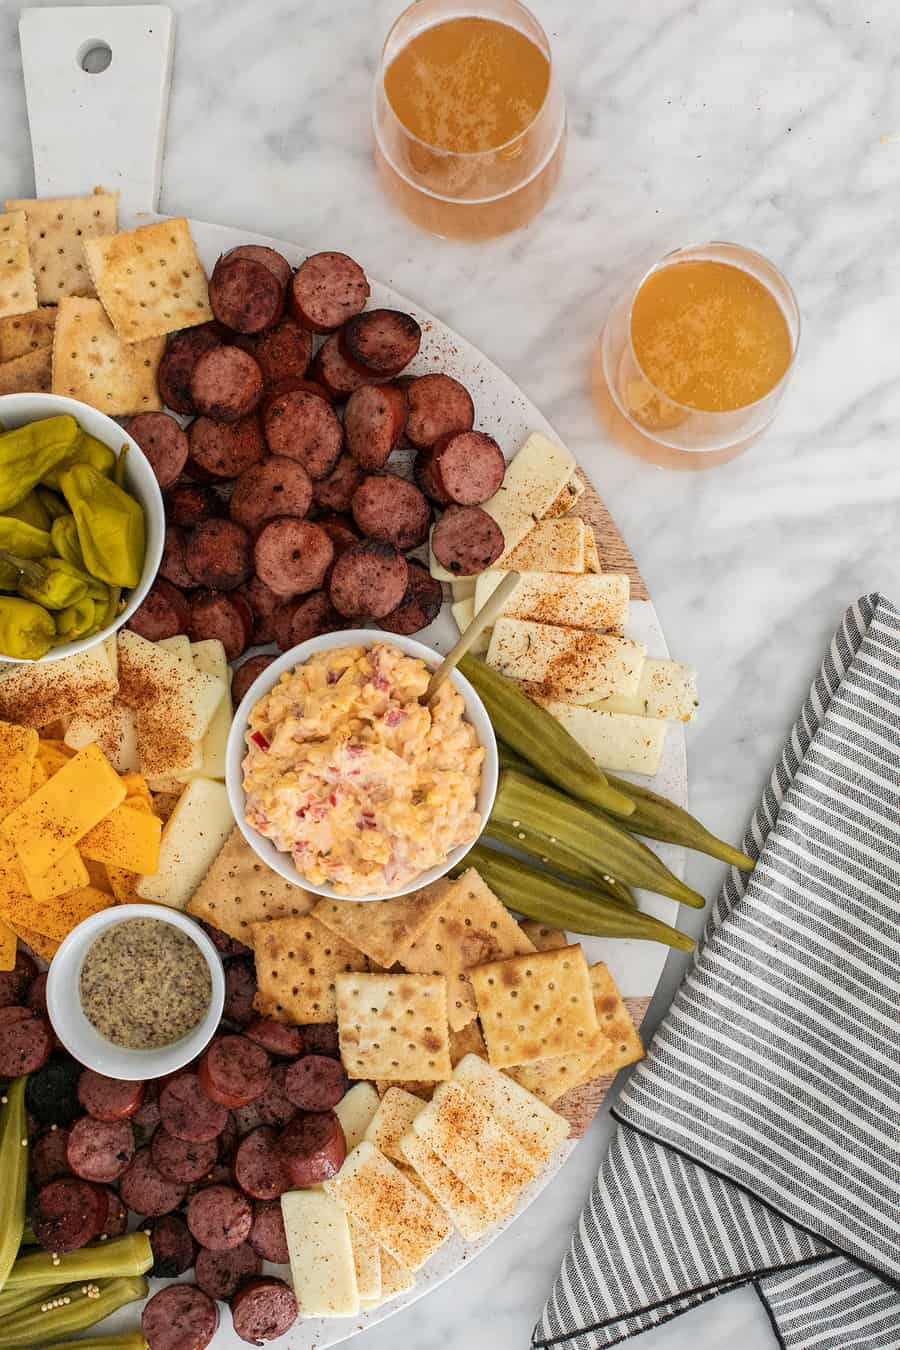 Charcuterie board with sausage and cheese